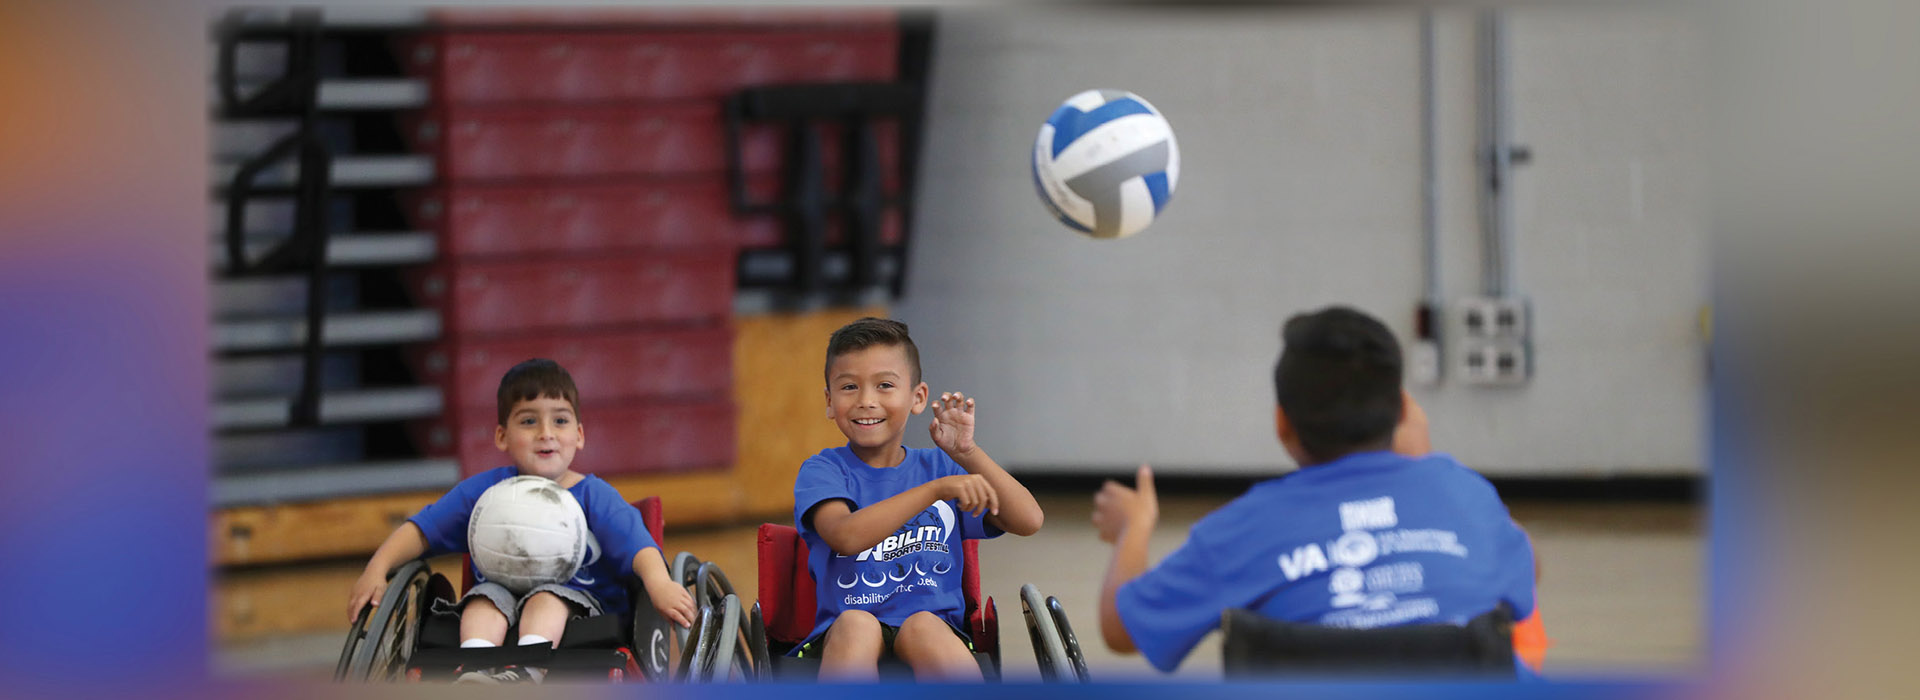 Registration is still open for the 11th annual DisABILITY Sports Festival set for Saturday at CSUSB